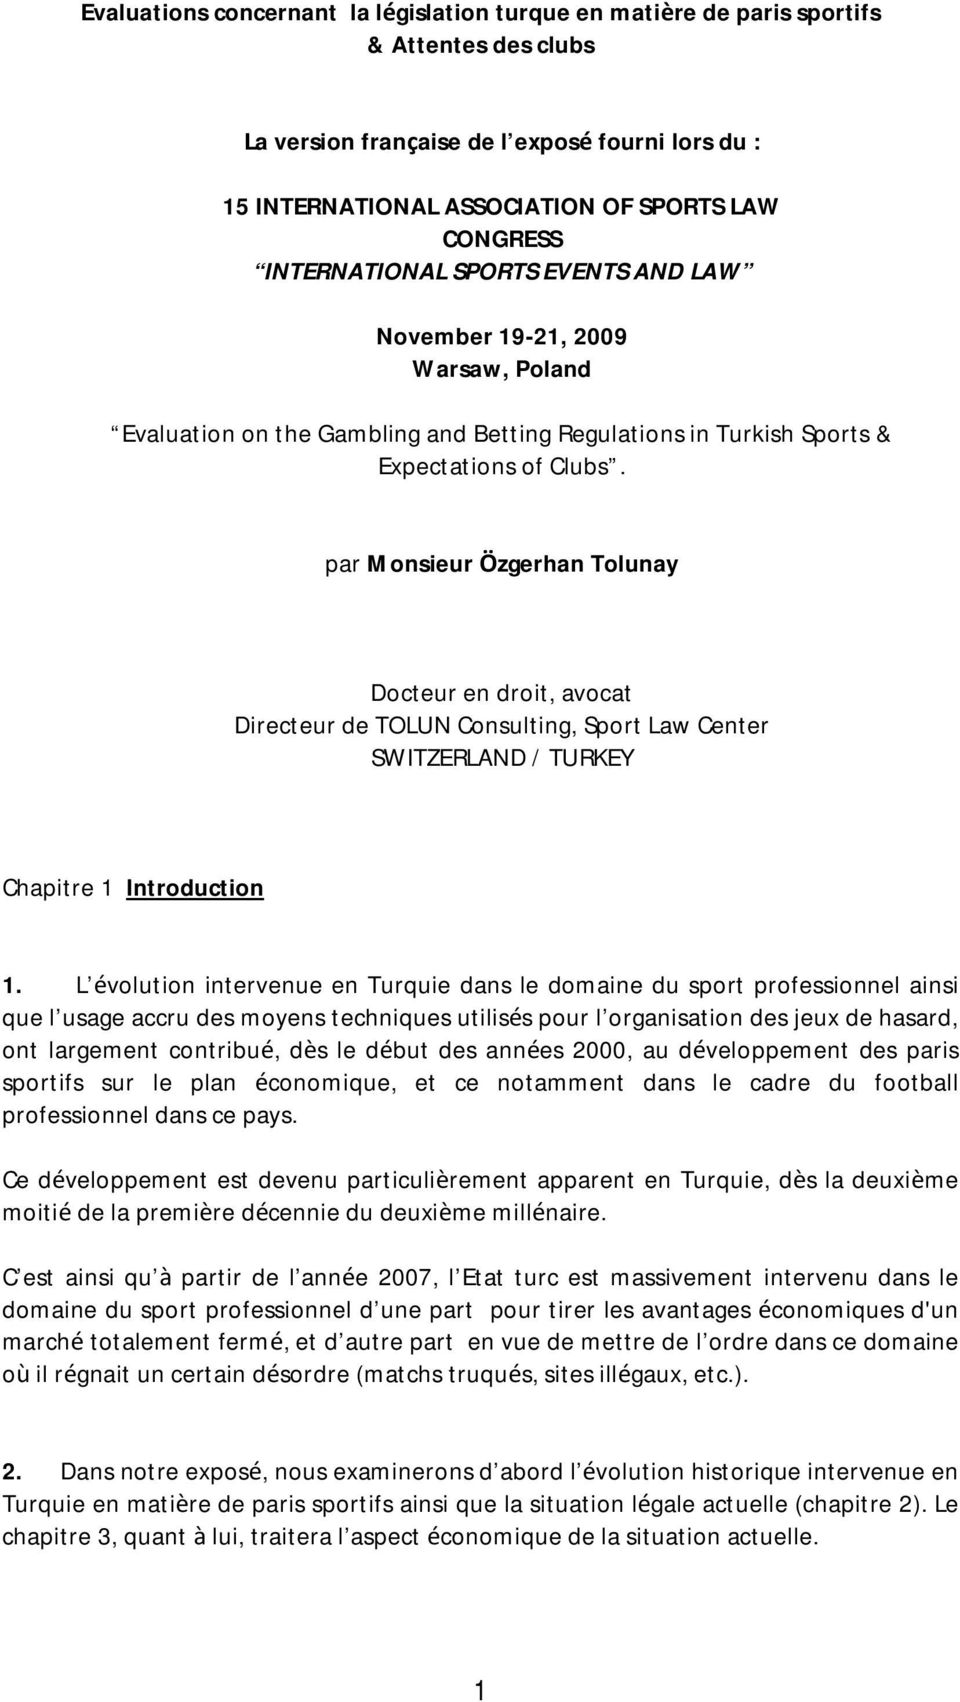 par Monsieur Özgerhan Tolunay Docteur en droit, avocat Directeur de TOLUN Consulting, Sport Law Center SWITZERLAND / TURKEY Chapitre 1 Introduction 1.